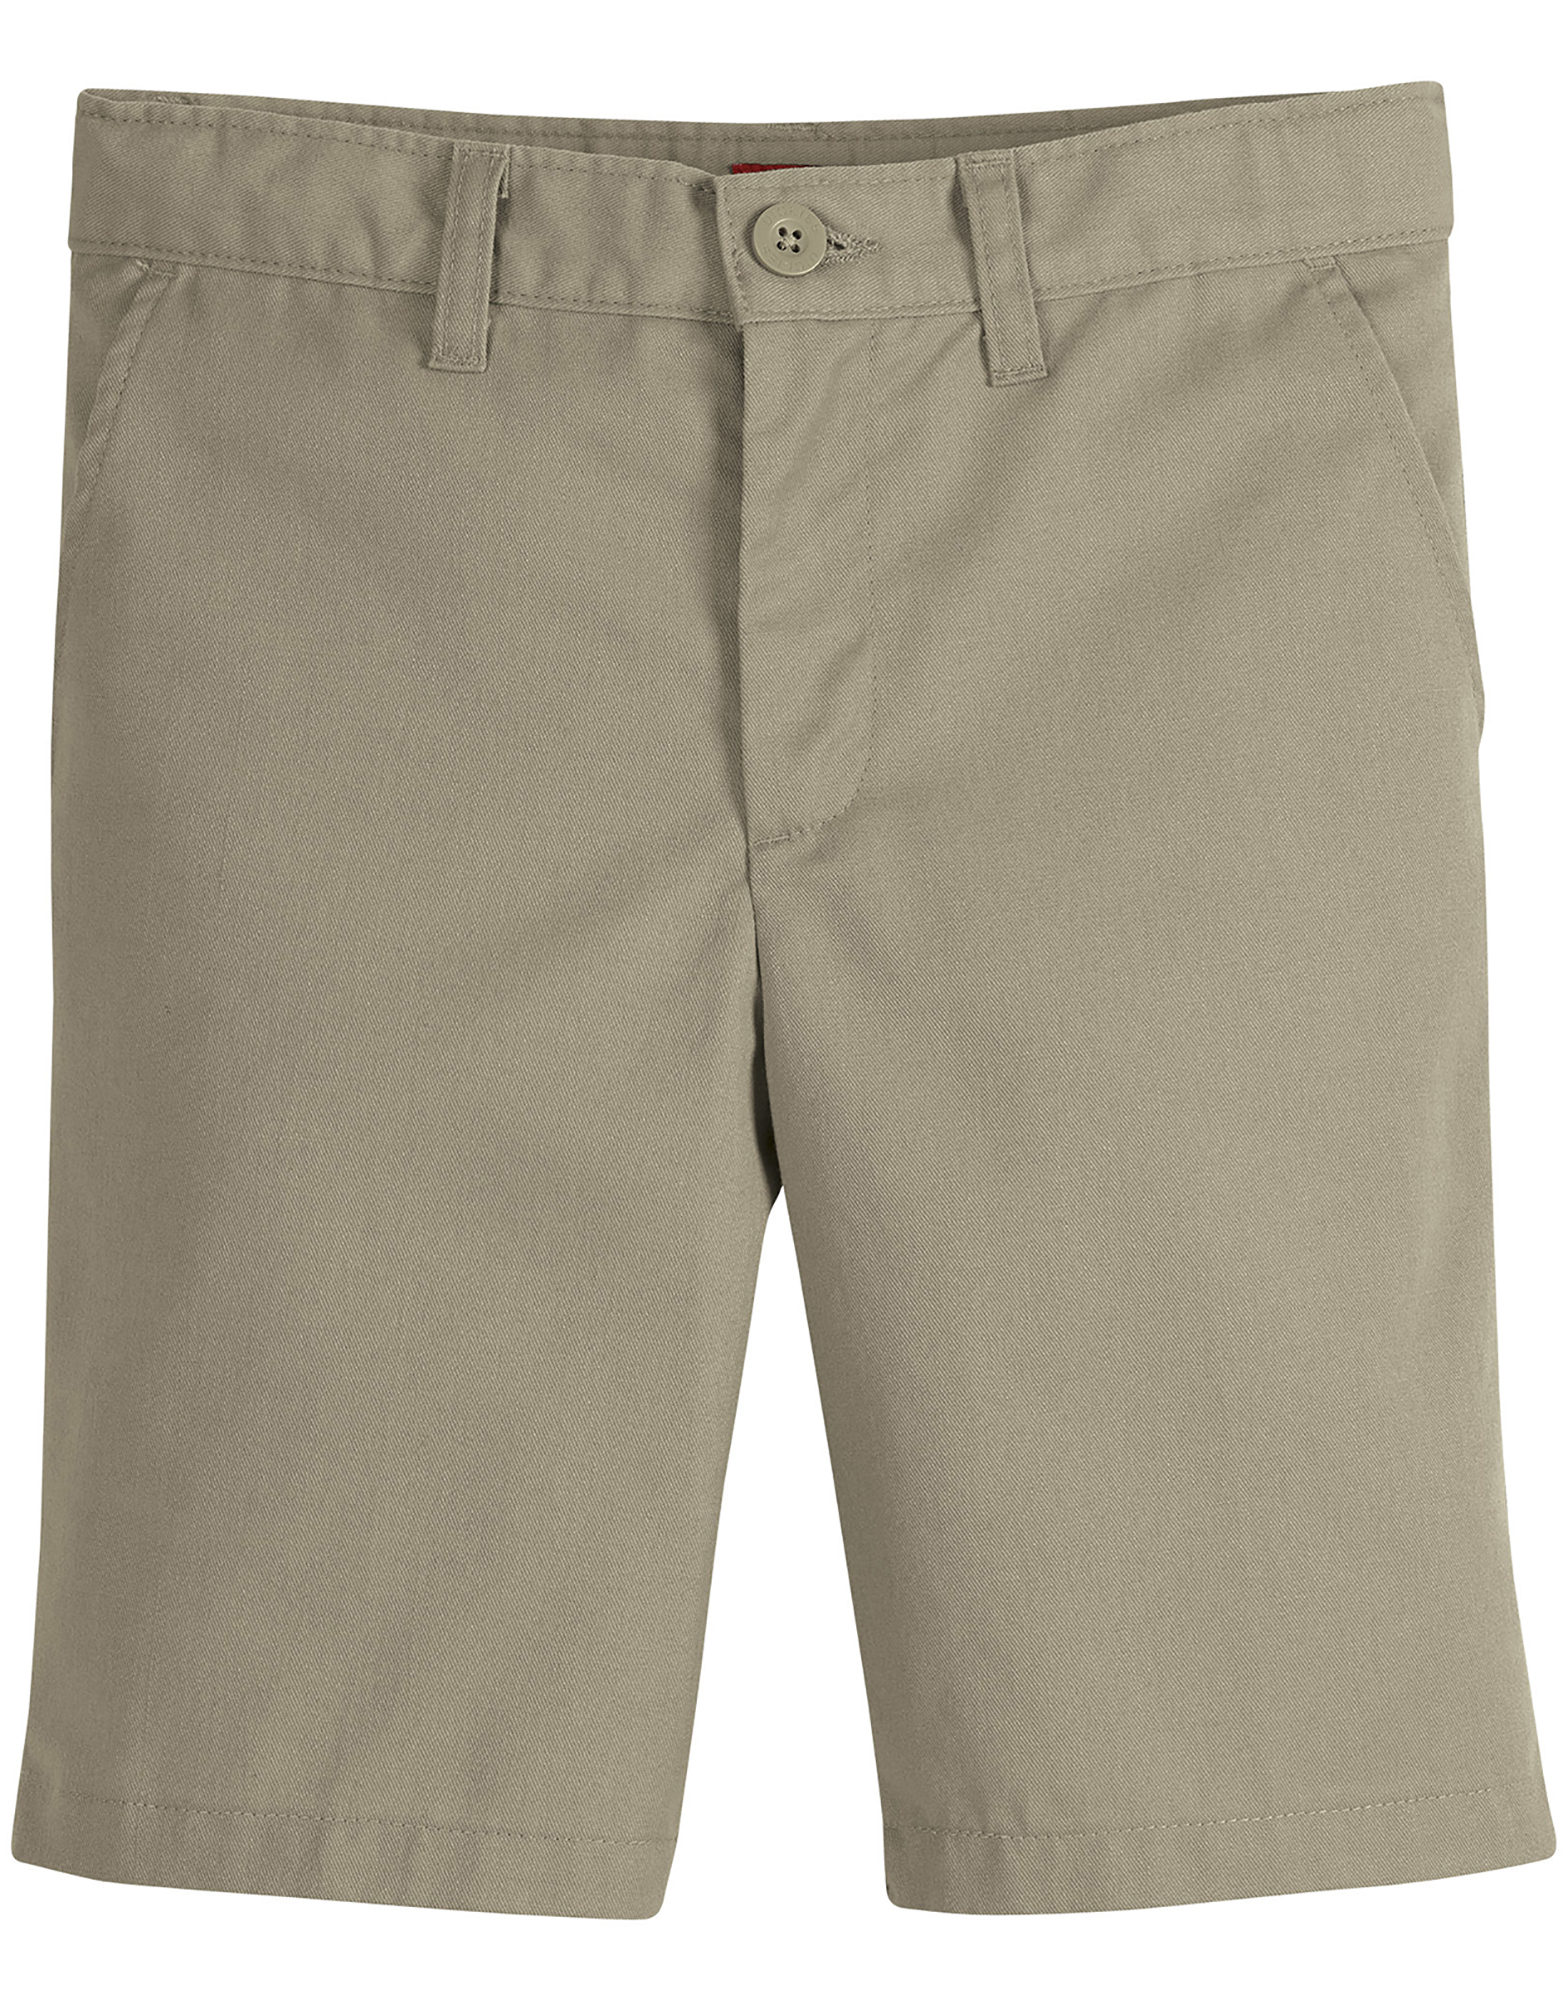 Juniors Schoolwear Slim Fit Flat Front Shorts - Desert Khaki (DS)